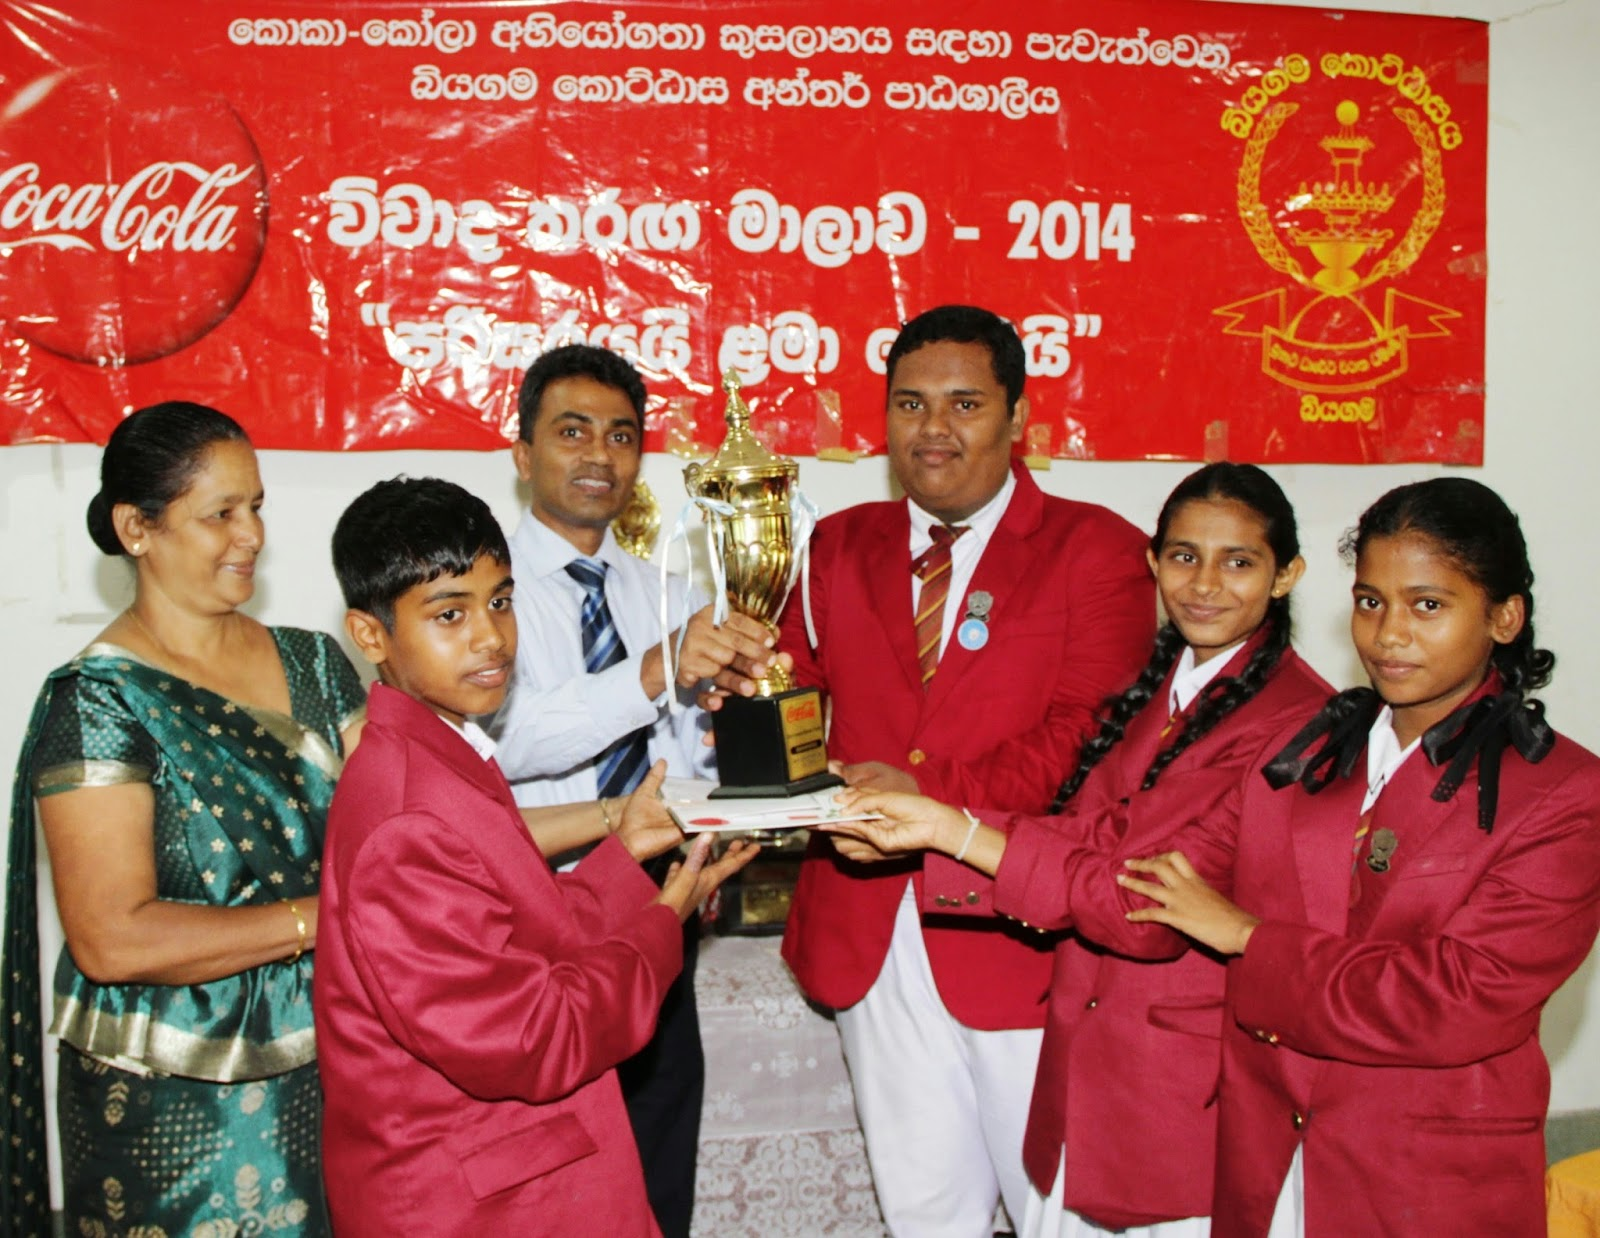 Ruwan Kumara Public Affairs and Communications and SRA Manager at Coca-Cola Beverages Sri Lanka Ltd hands over trophy to Victorious Siyamabalapewatte Kanishta Vidyalaya Team, winners of the second category